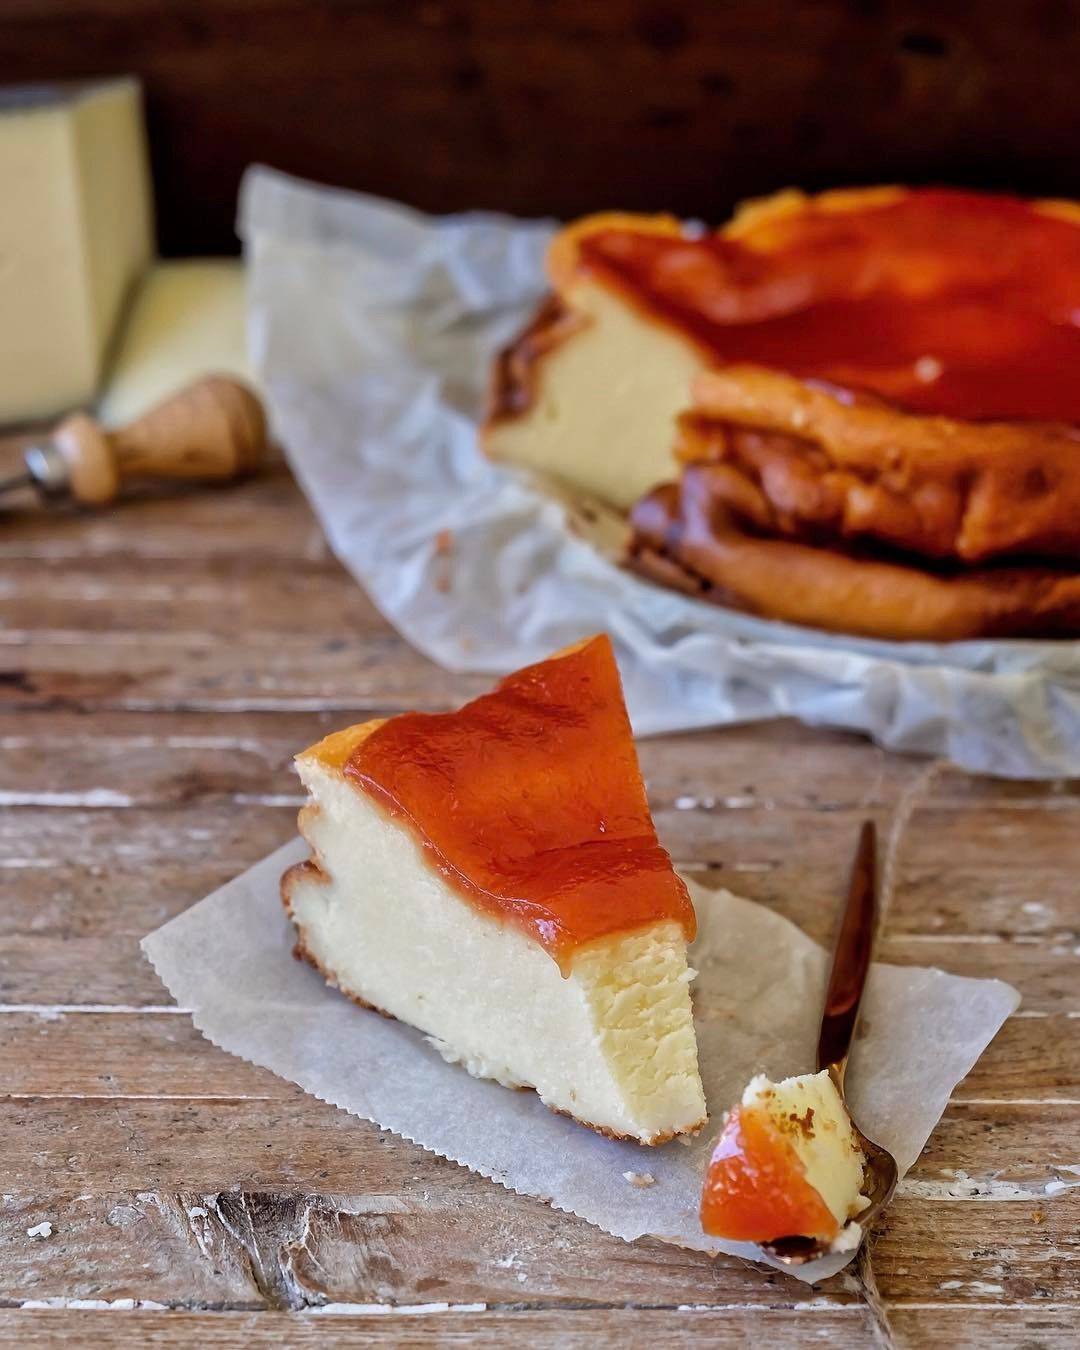 Cheesecake De Queso Manchego Videoreceta En Mi Bio Grab The Videorecipe In My Bio Quince Recipes Sweet And Salty Desserts